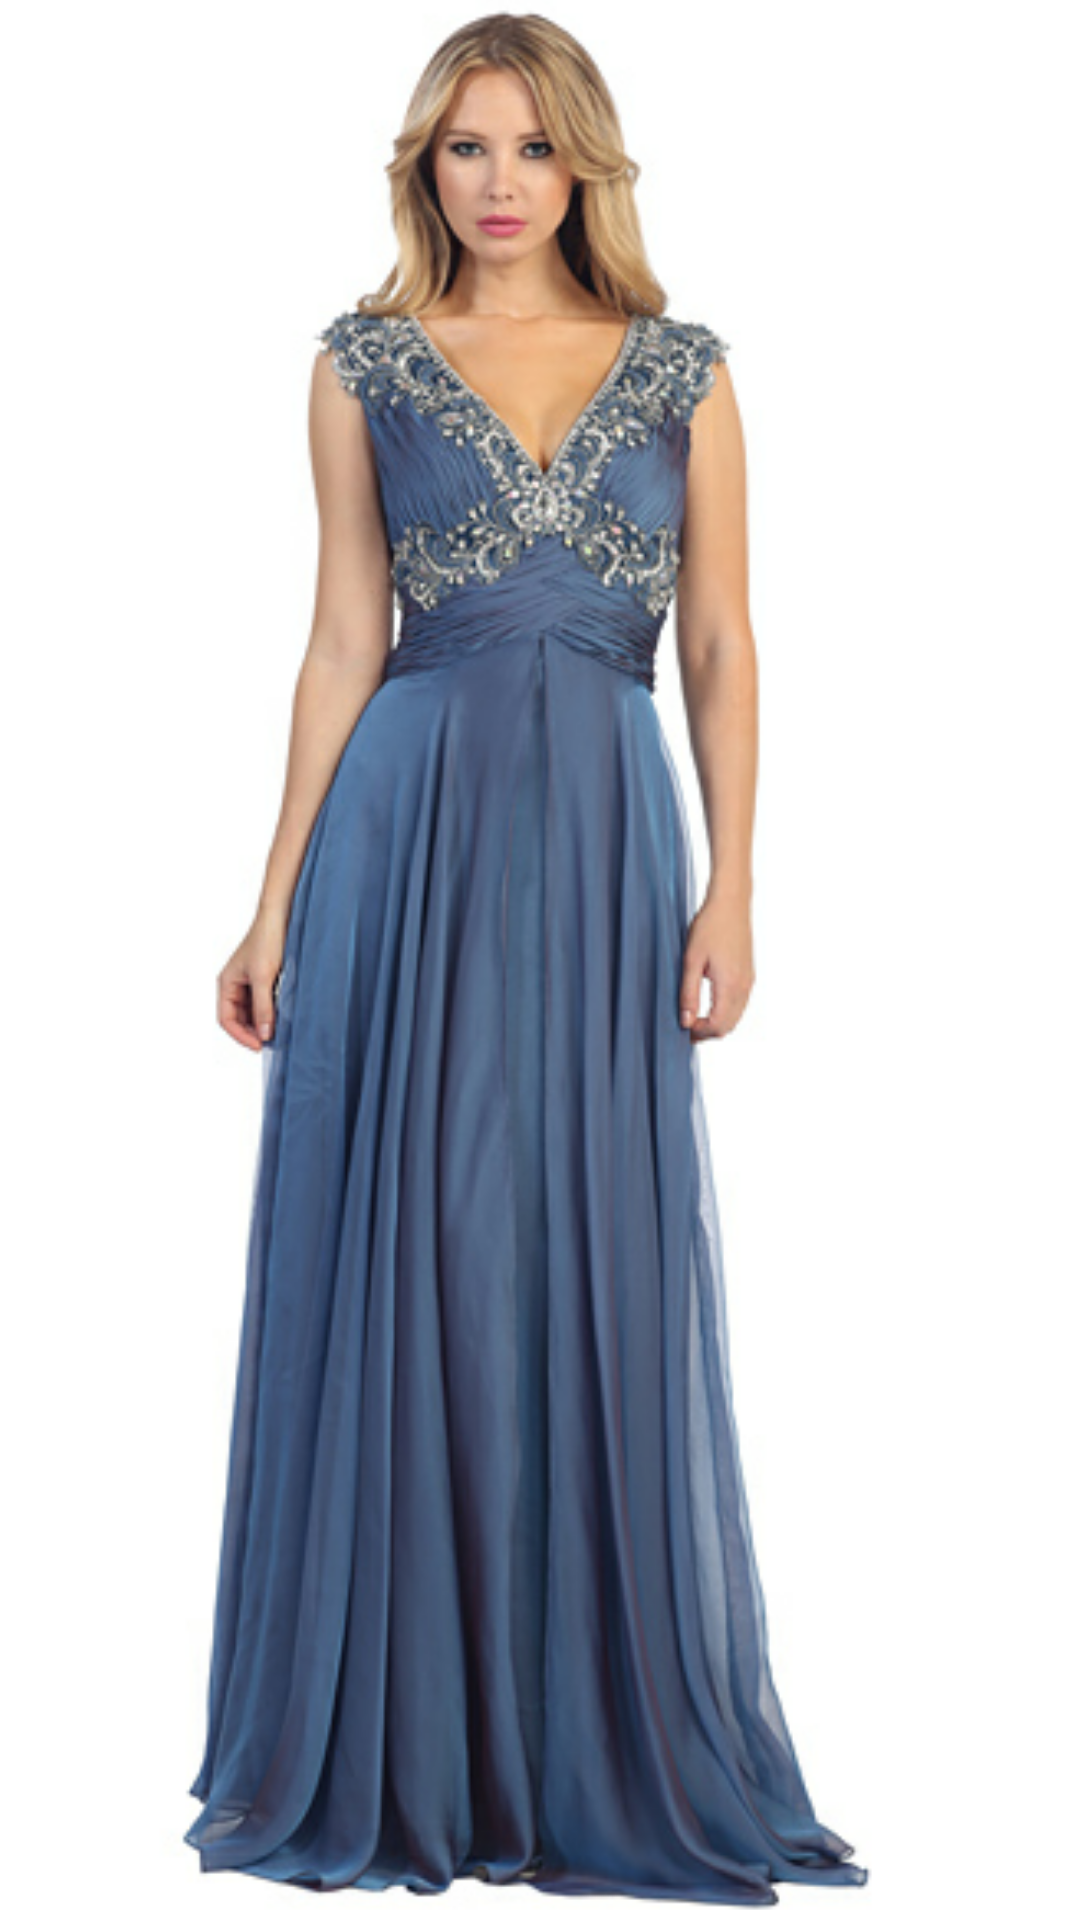 Prom Dresses, Evening Gowns, Formal Wear,Montclair, CA